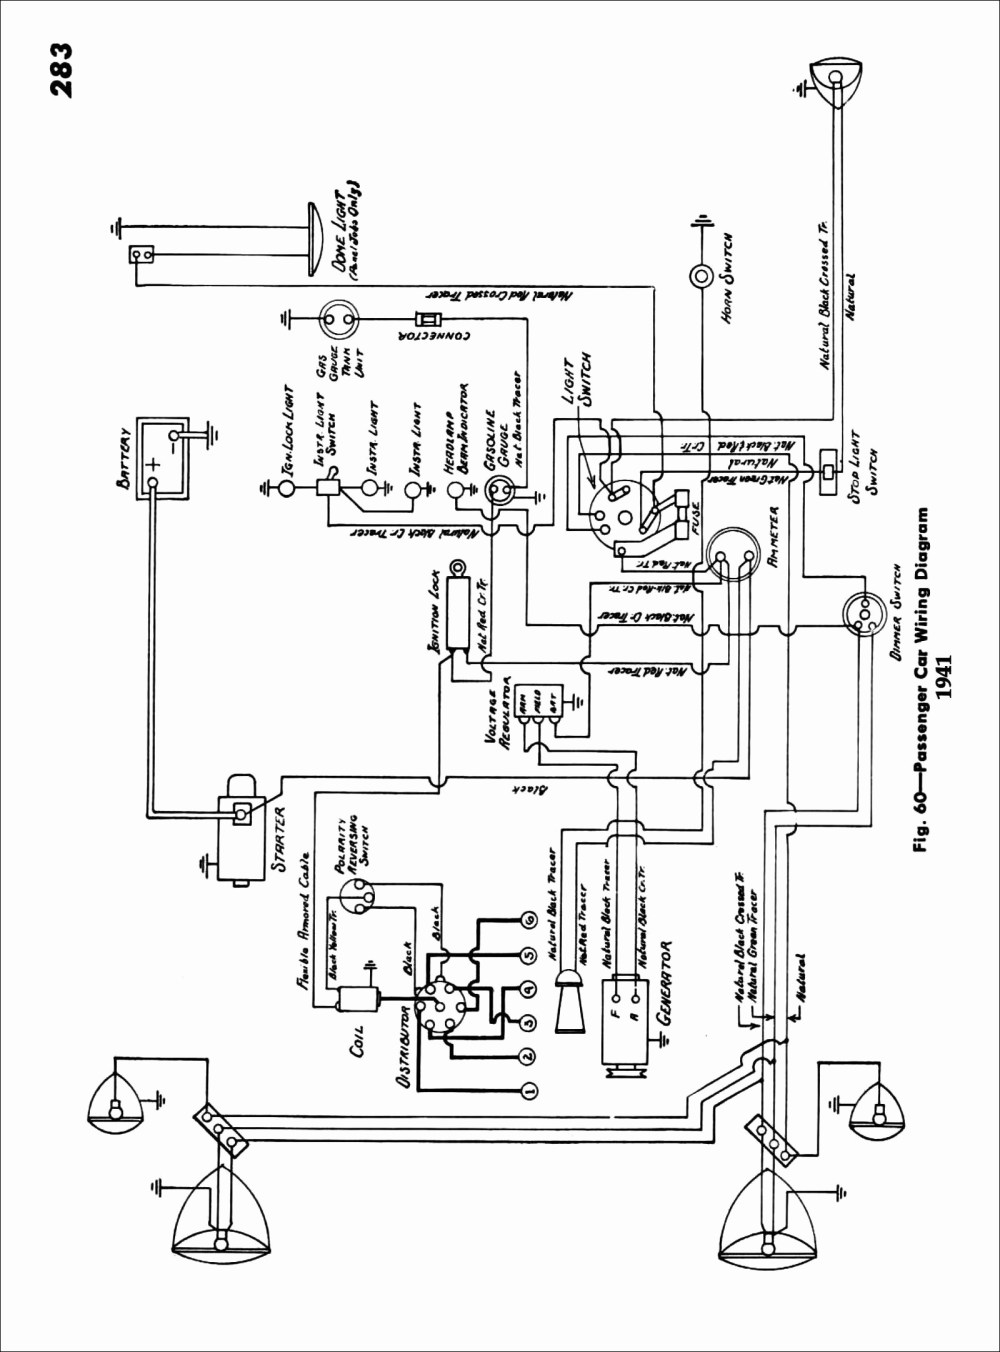 medium resolution of oliver 70 ignition wiring diagram block and schematic diagrams u2022 oliver 1650 wiring diagram ford